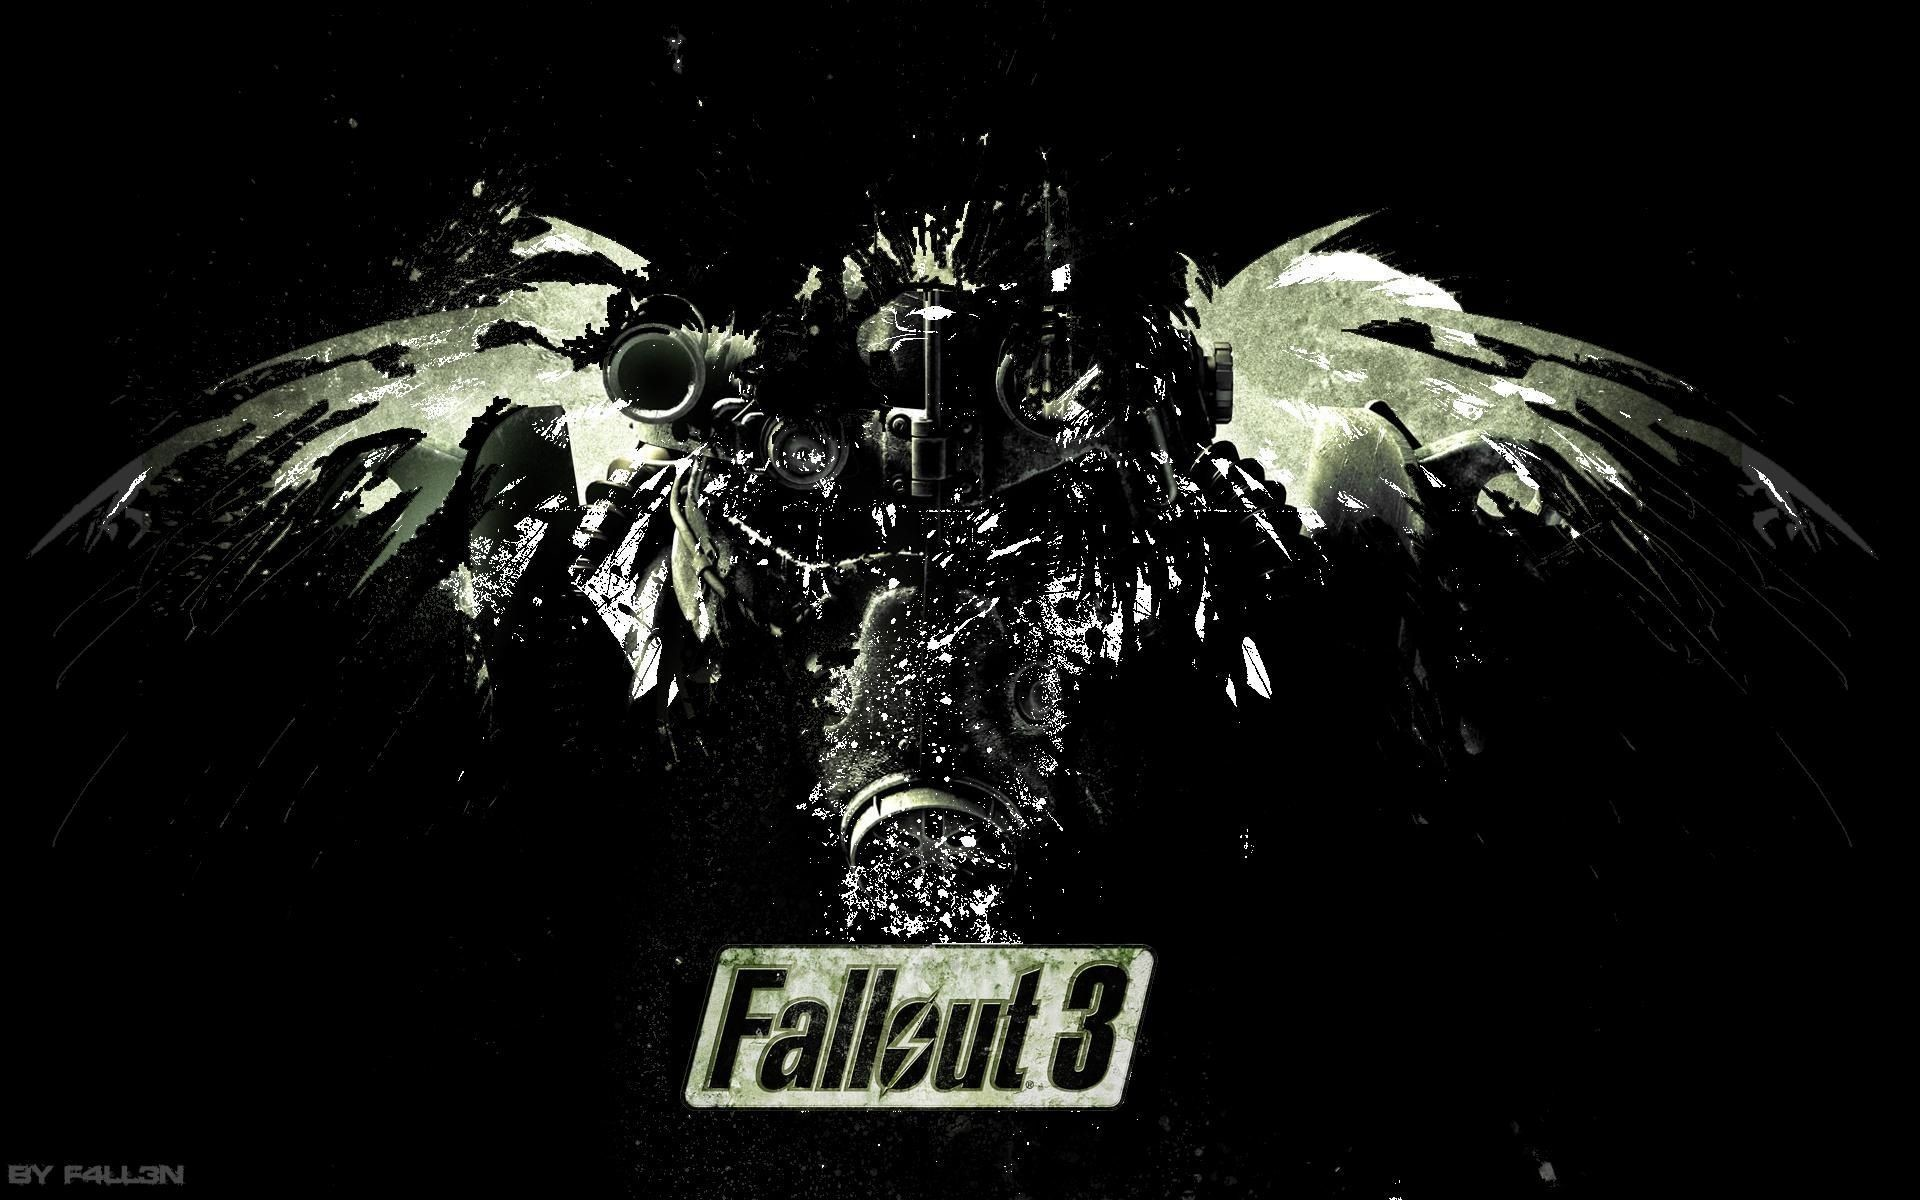 1920x1200 Fallout 3 Wallpapers | Best Wallpapers